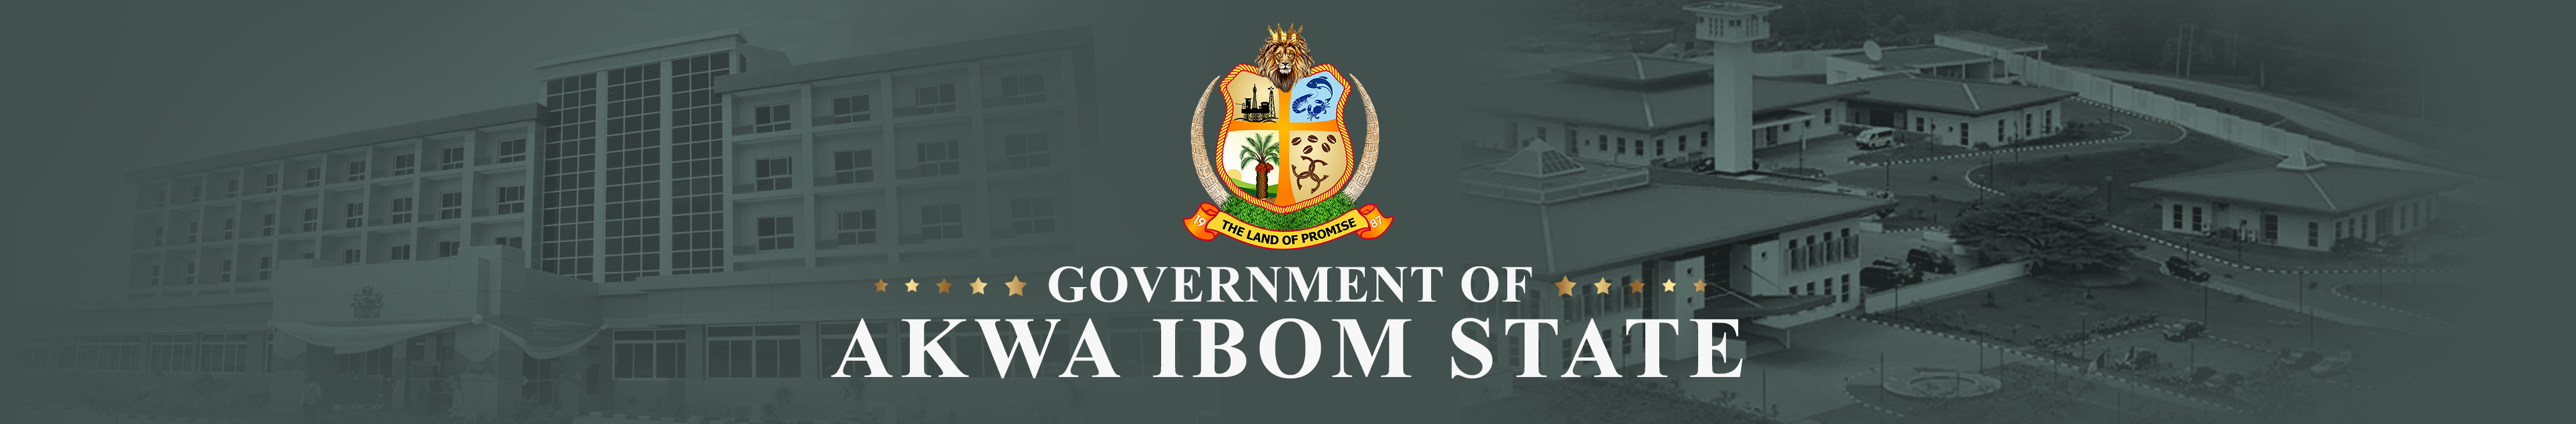 Akwa Ibom State Government